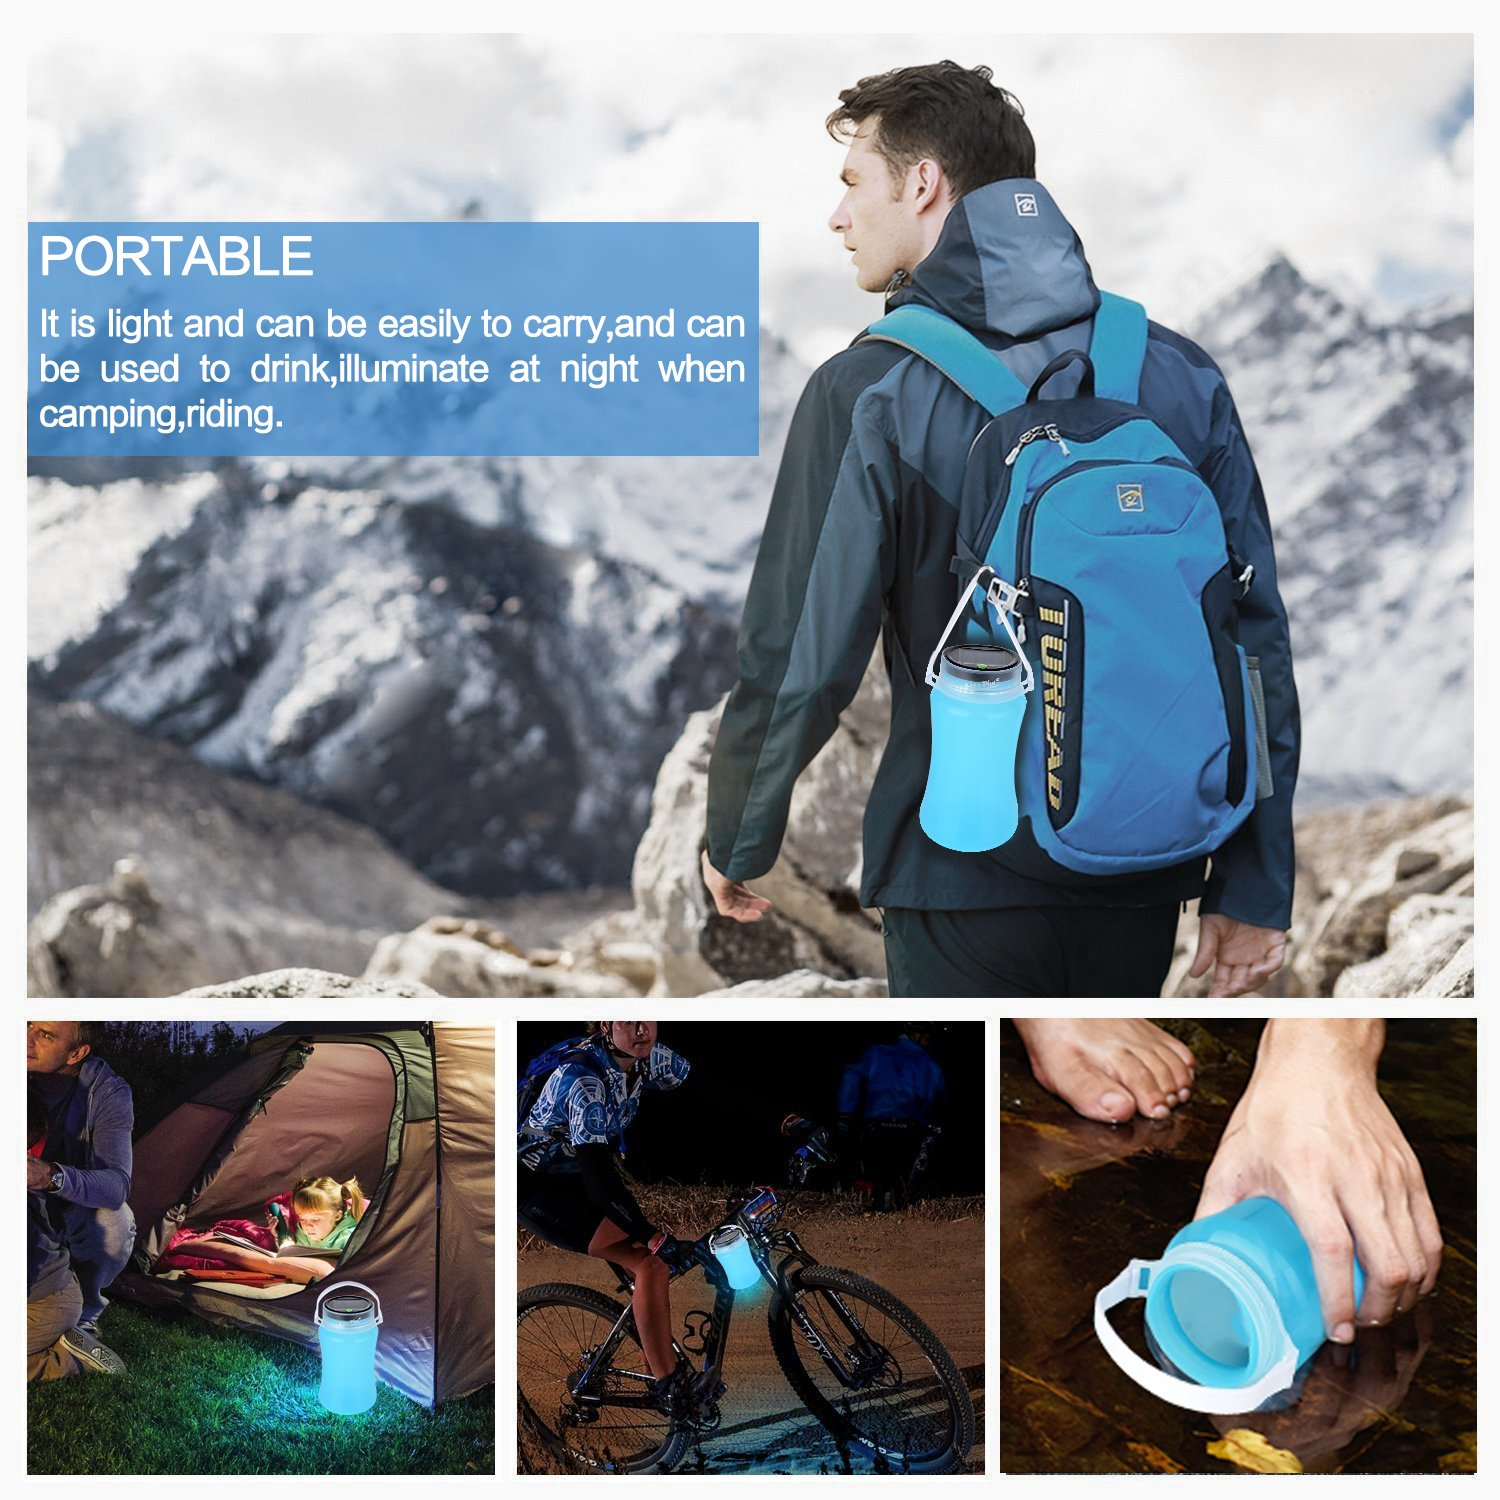 IMAXPLUS LED Solar Camping Lantern Waterproof IP 66 Foldable Storage Bottle with Chargeable USB Cable for Hiking,Camping,Fishing,Garden,Emergencies,Outages,Party Garden and Party